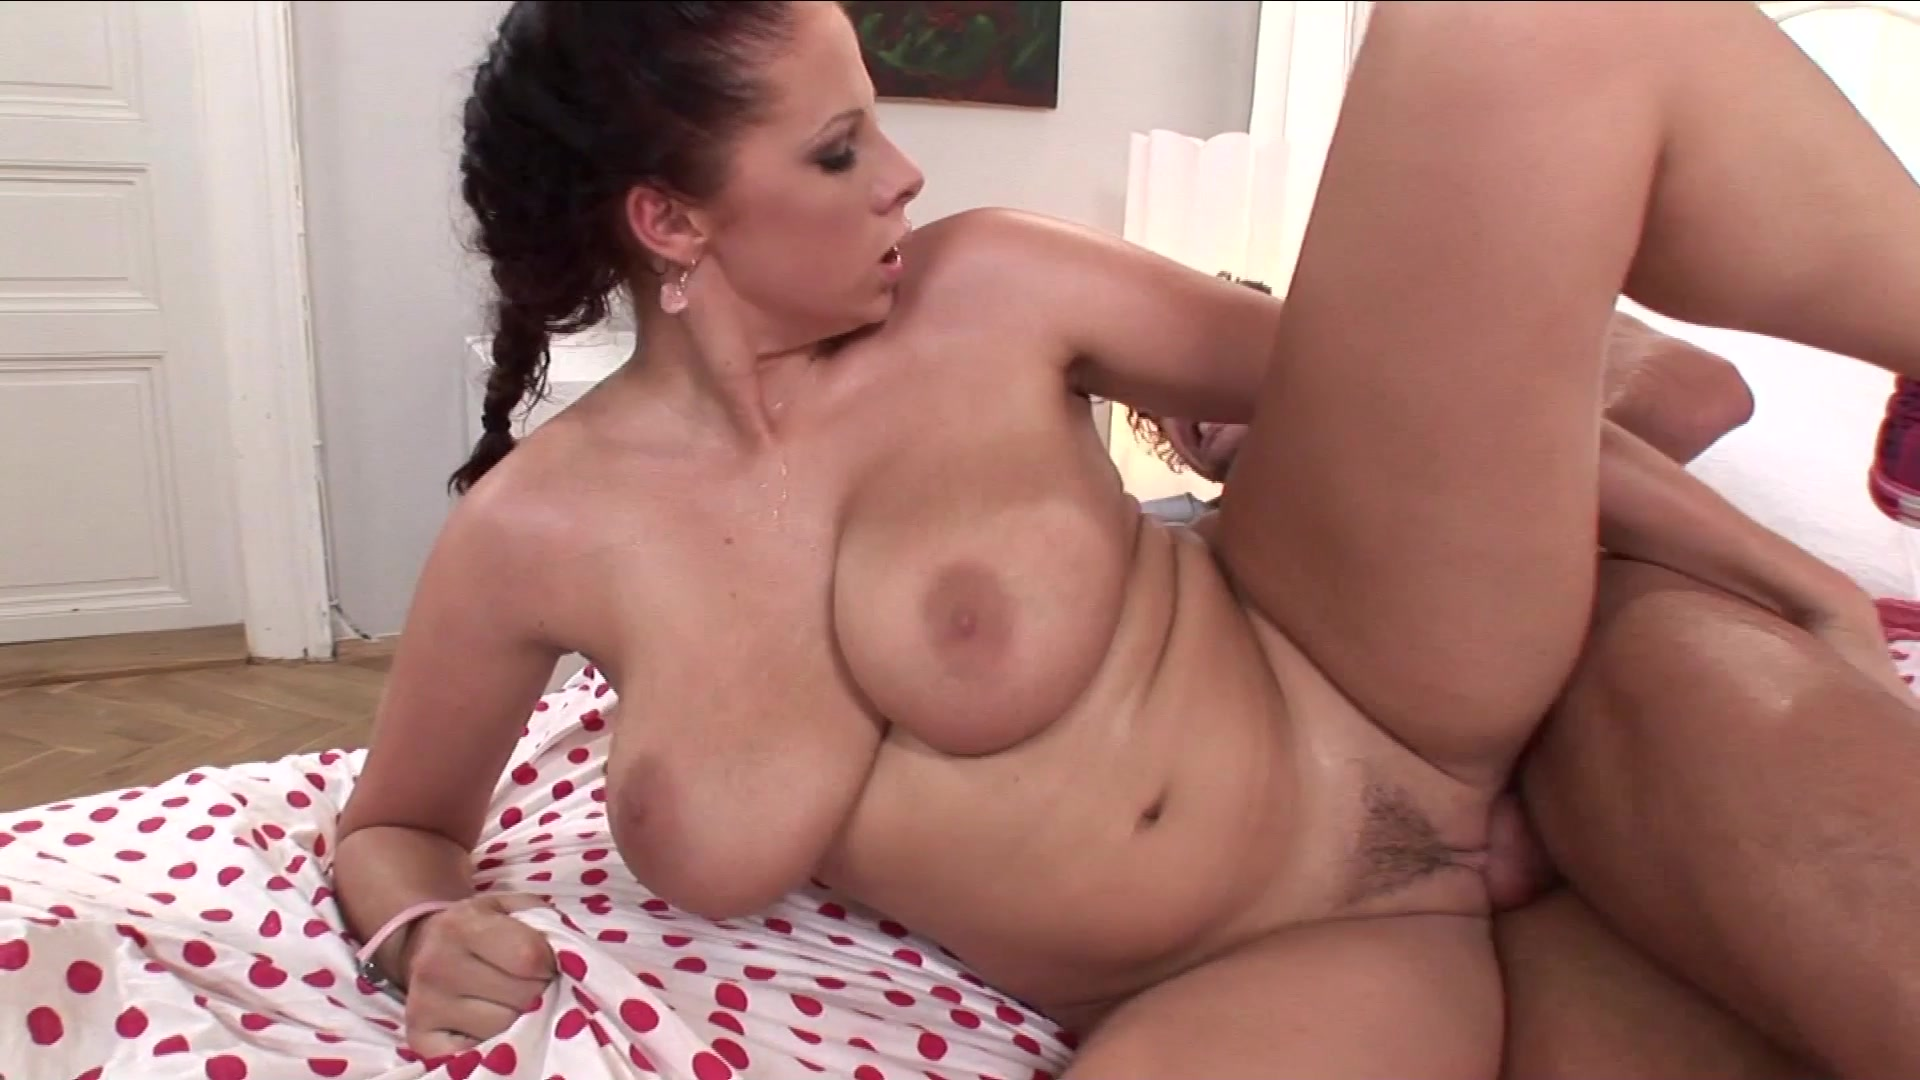 Busty beauty starts throating two cocks in special pov show 7